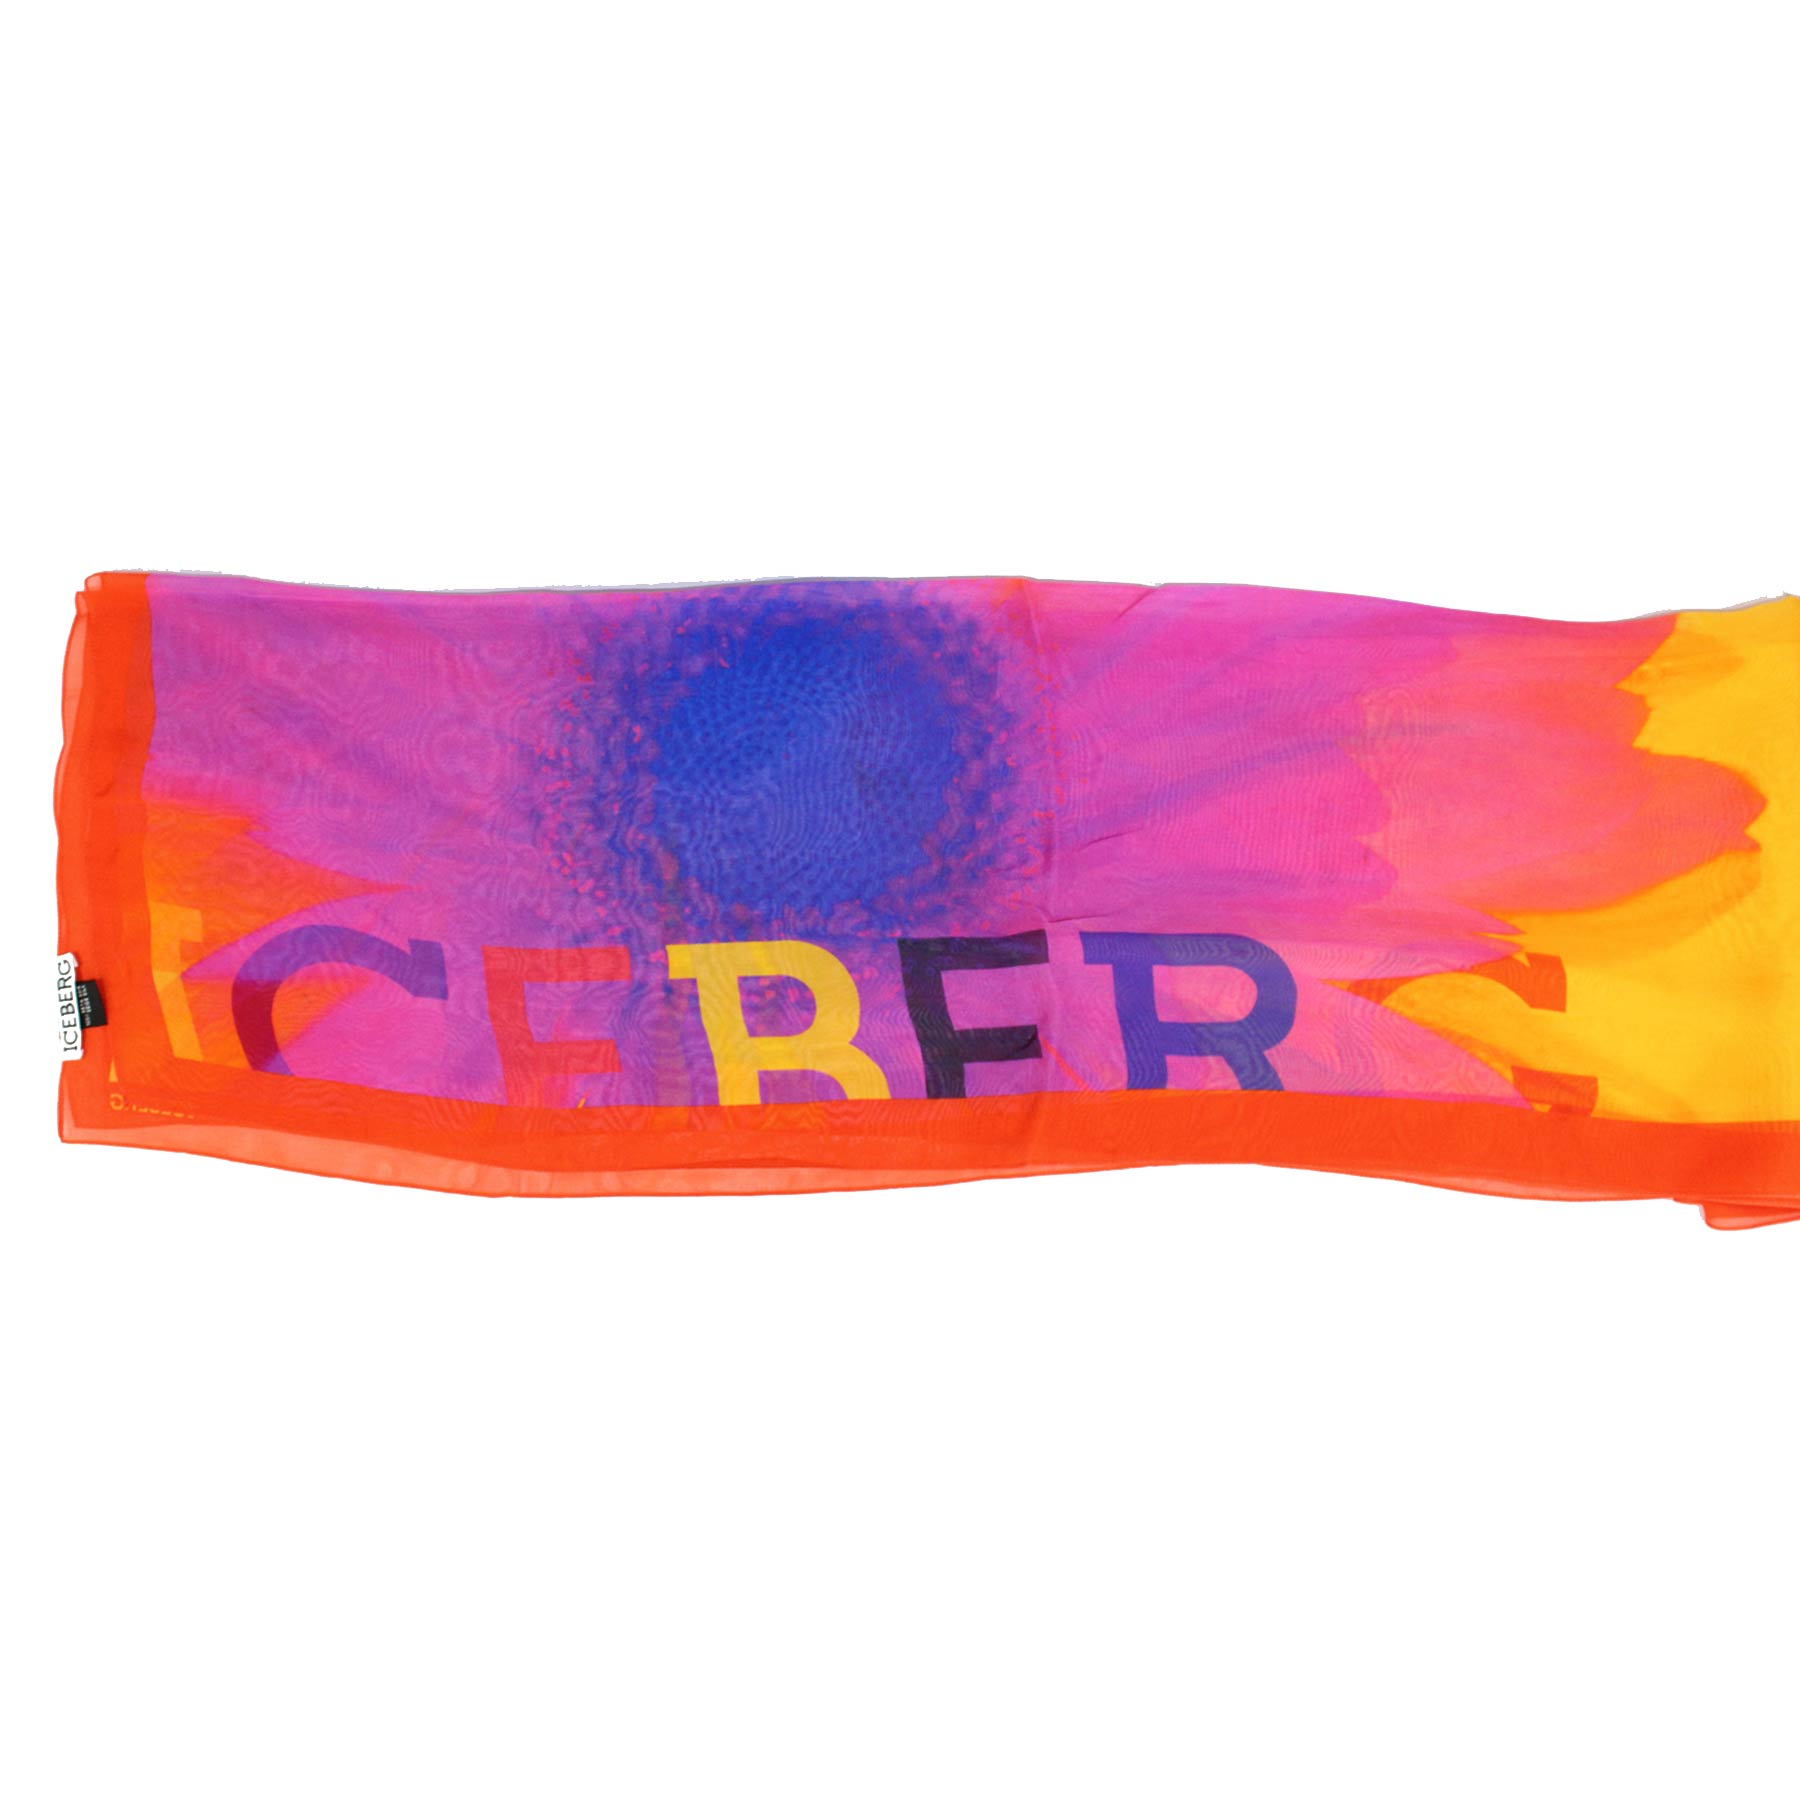 Iceberg Scarf Orange Purple Royal Blue SALE